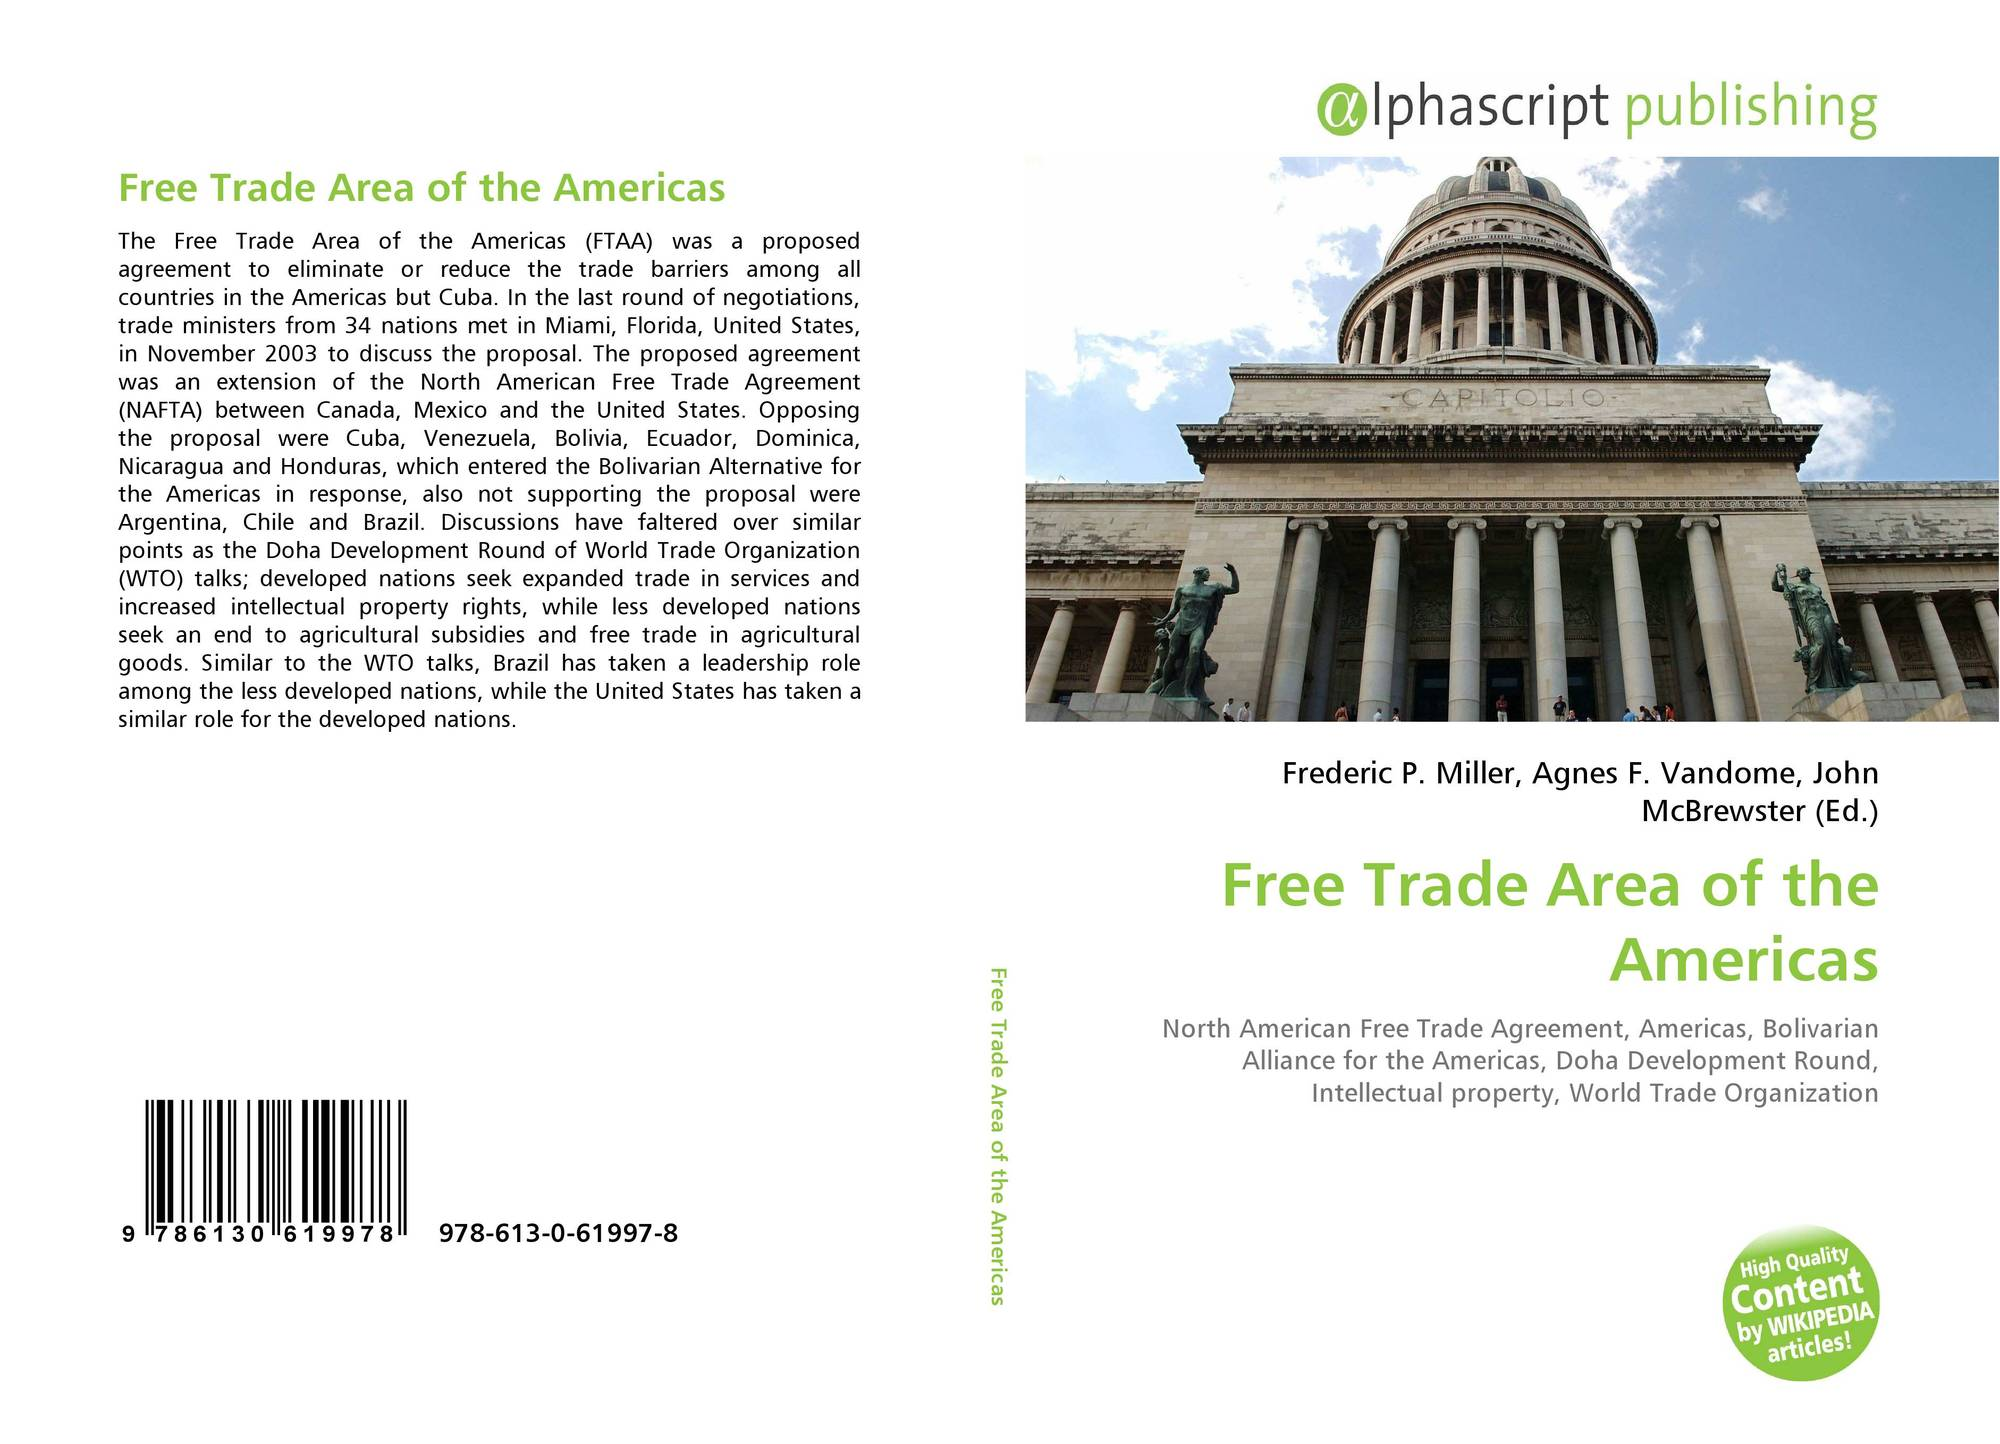 a discussion on a free trade area agreement of latin american countries